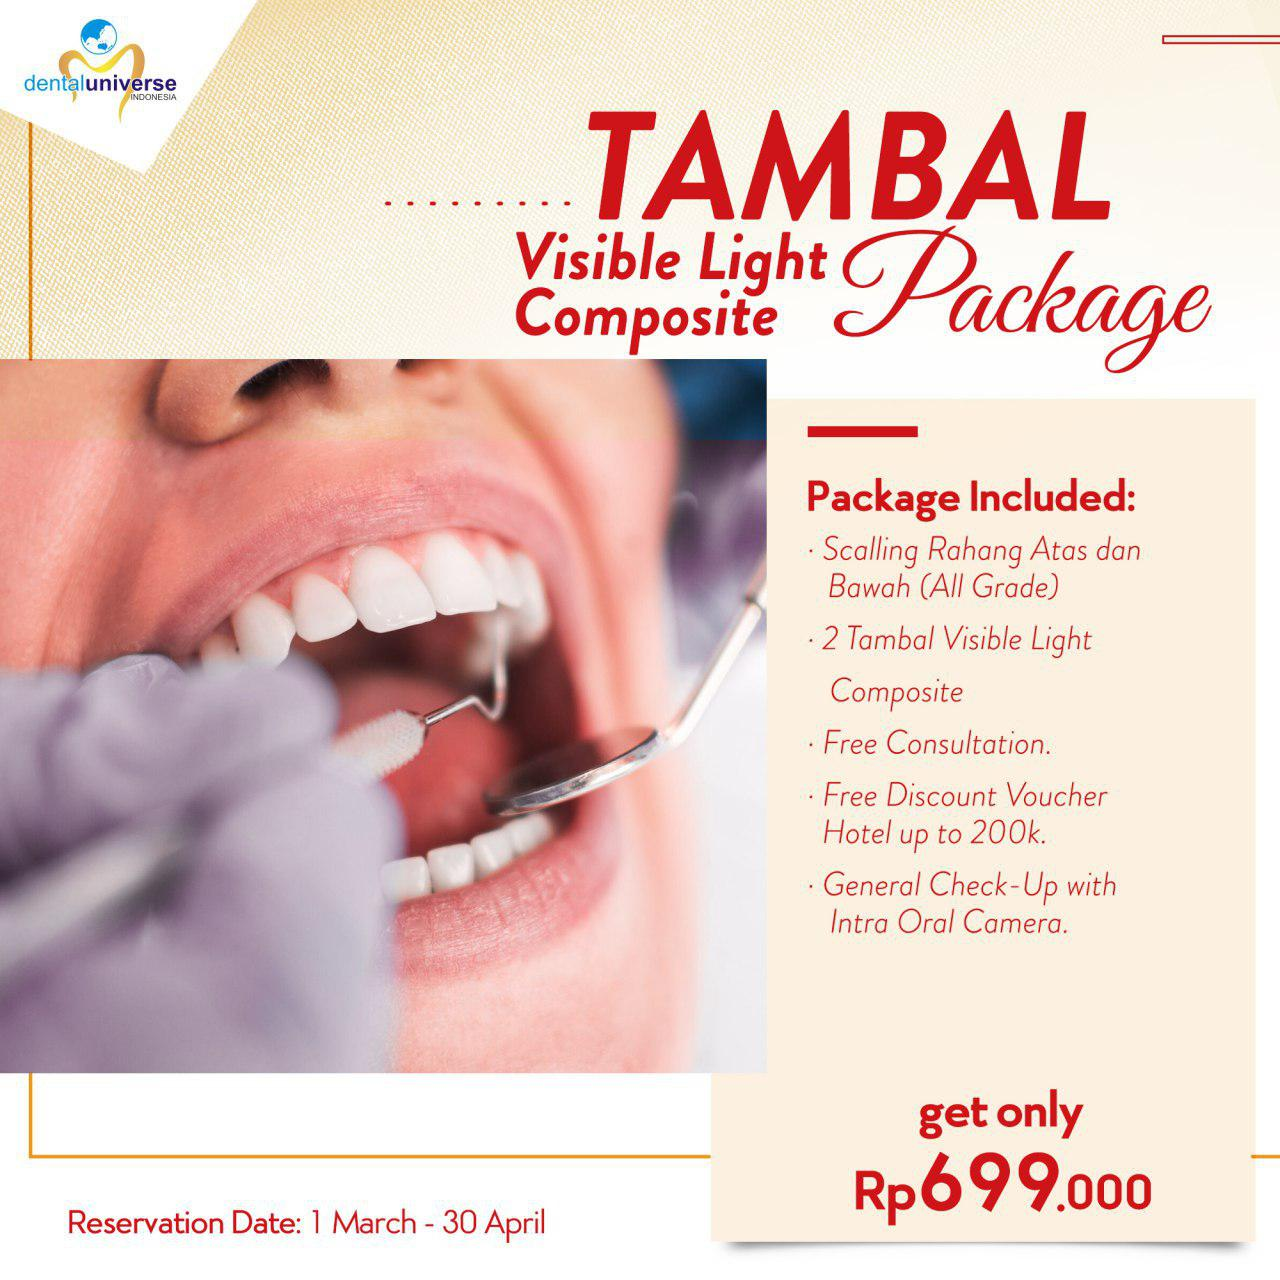 Promo Tambal Gigi Visible Light Composite Package 2c8f1ae3b2